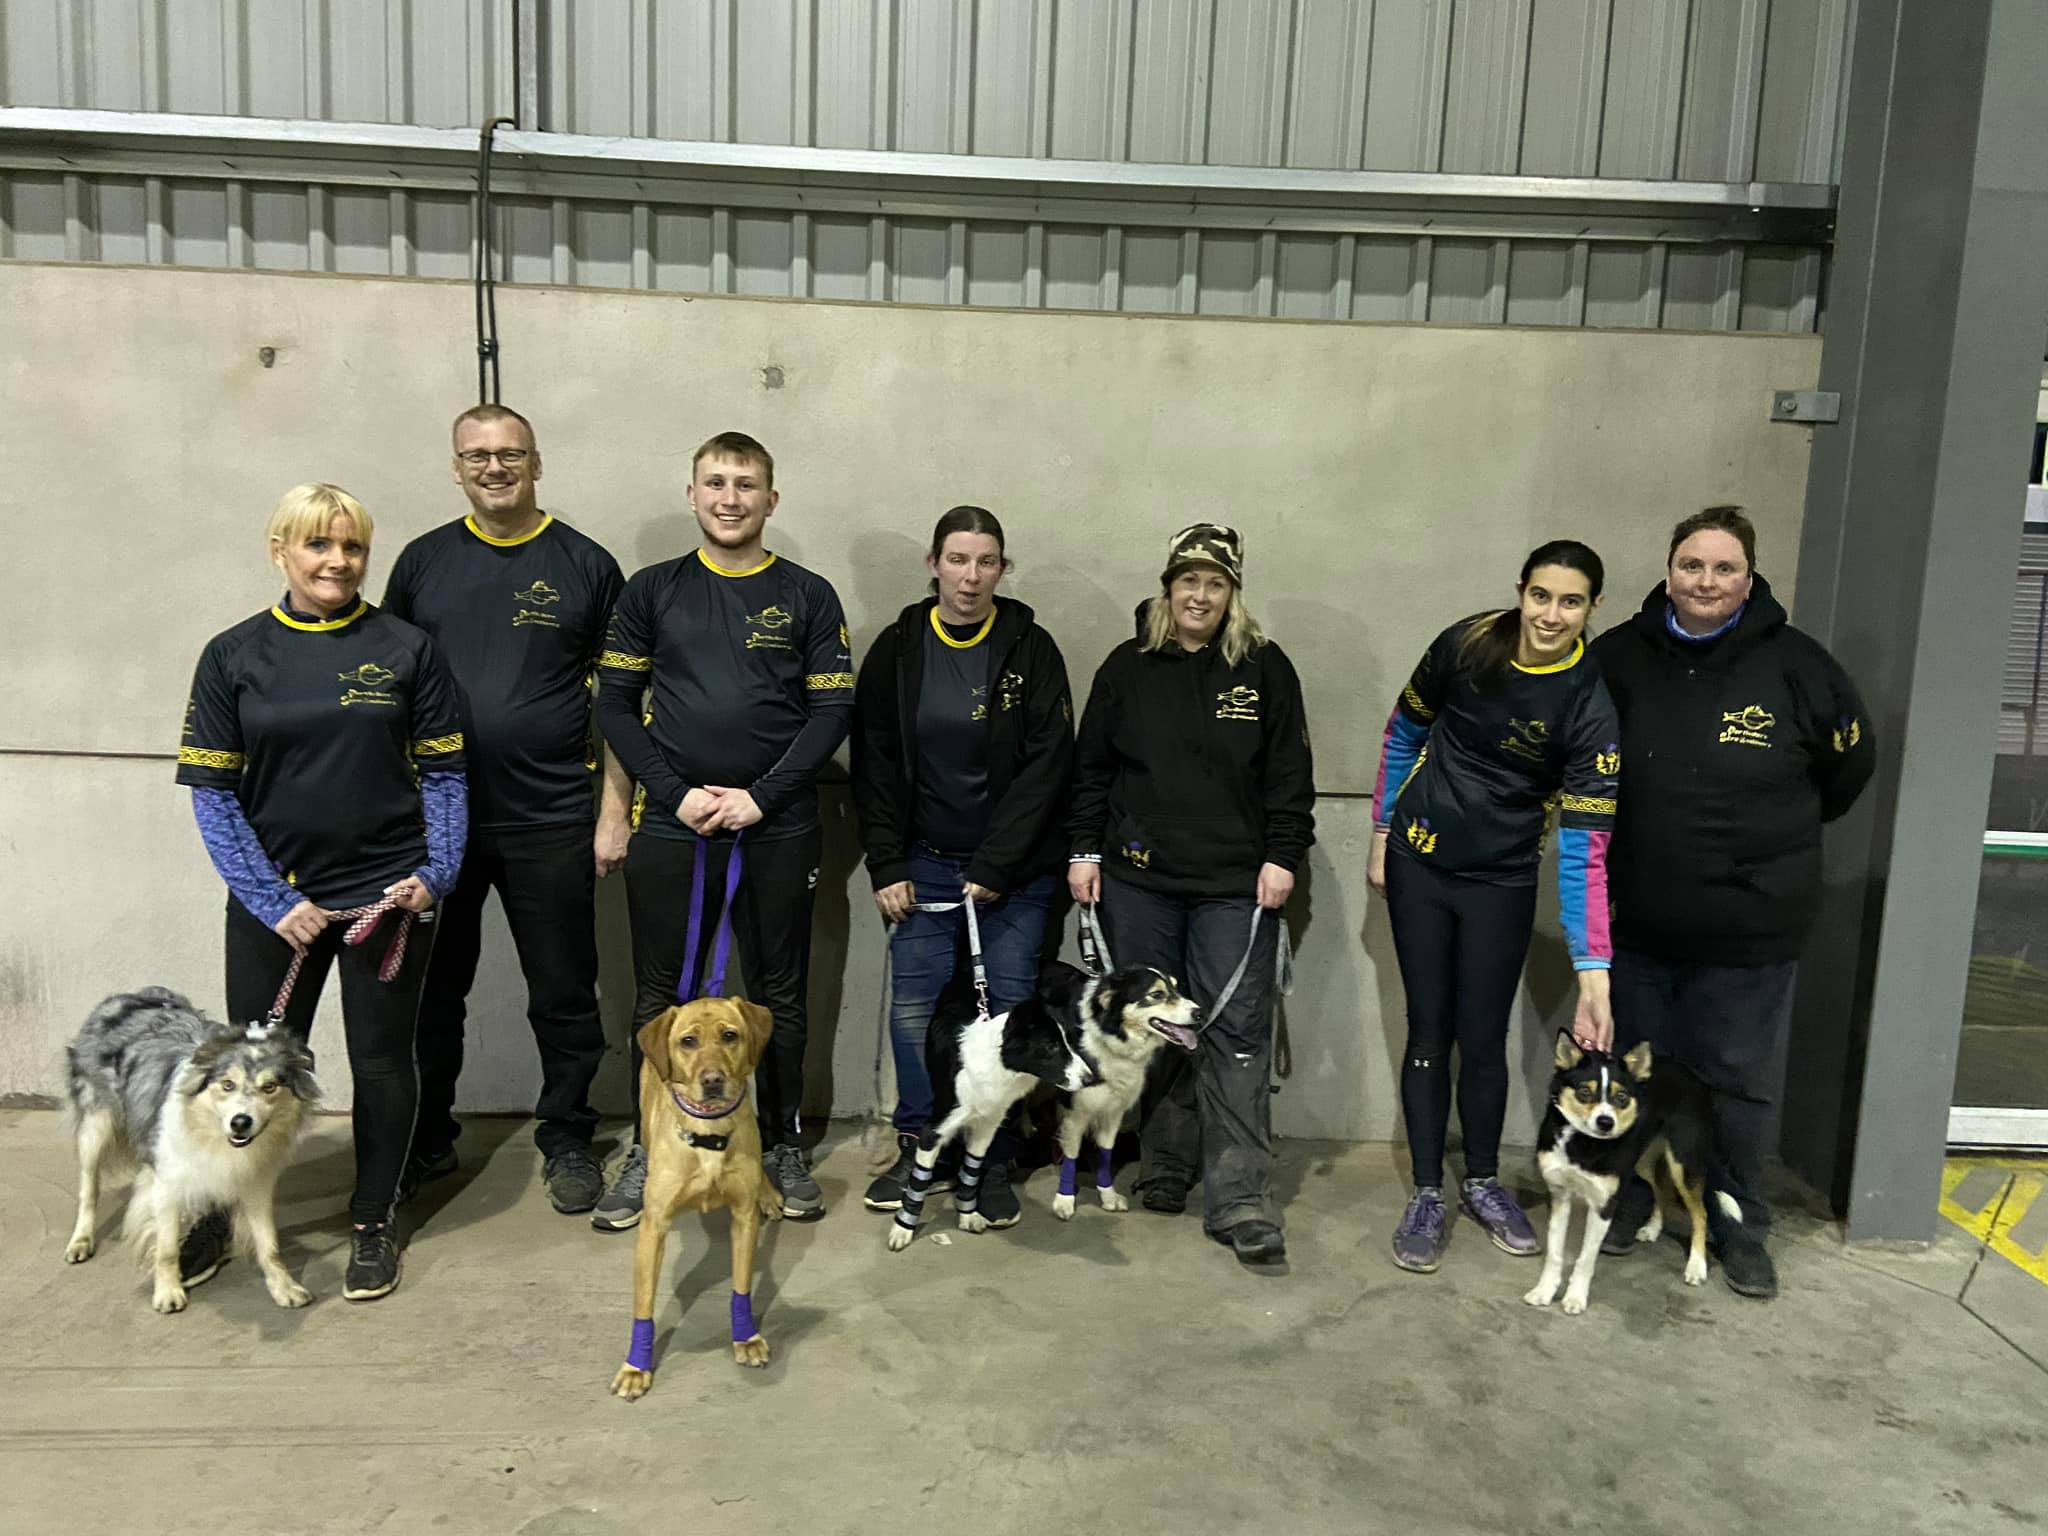 The Perthshire Streamlinerz Crufts flyball team 2020.